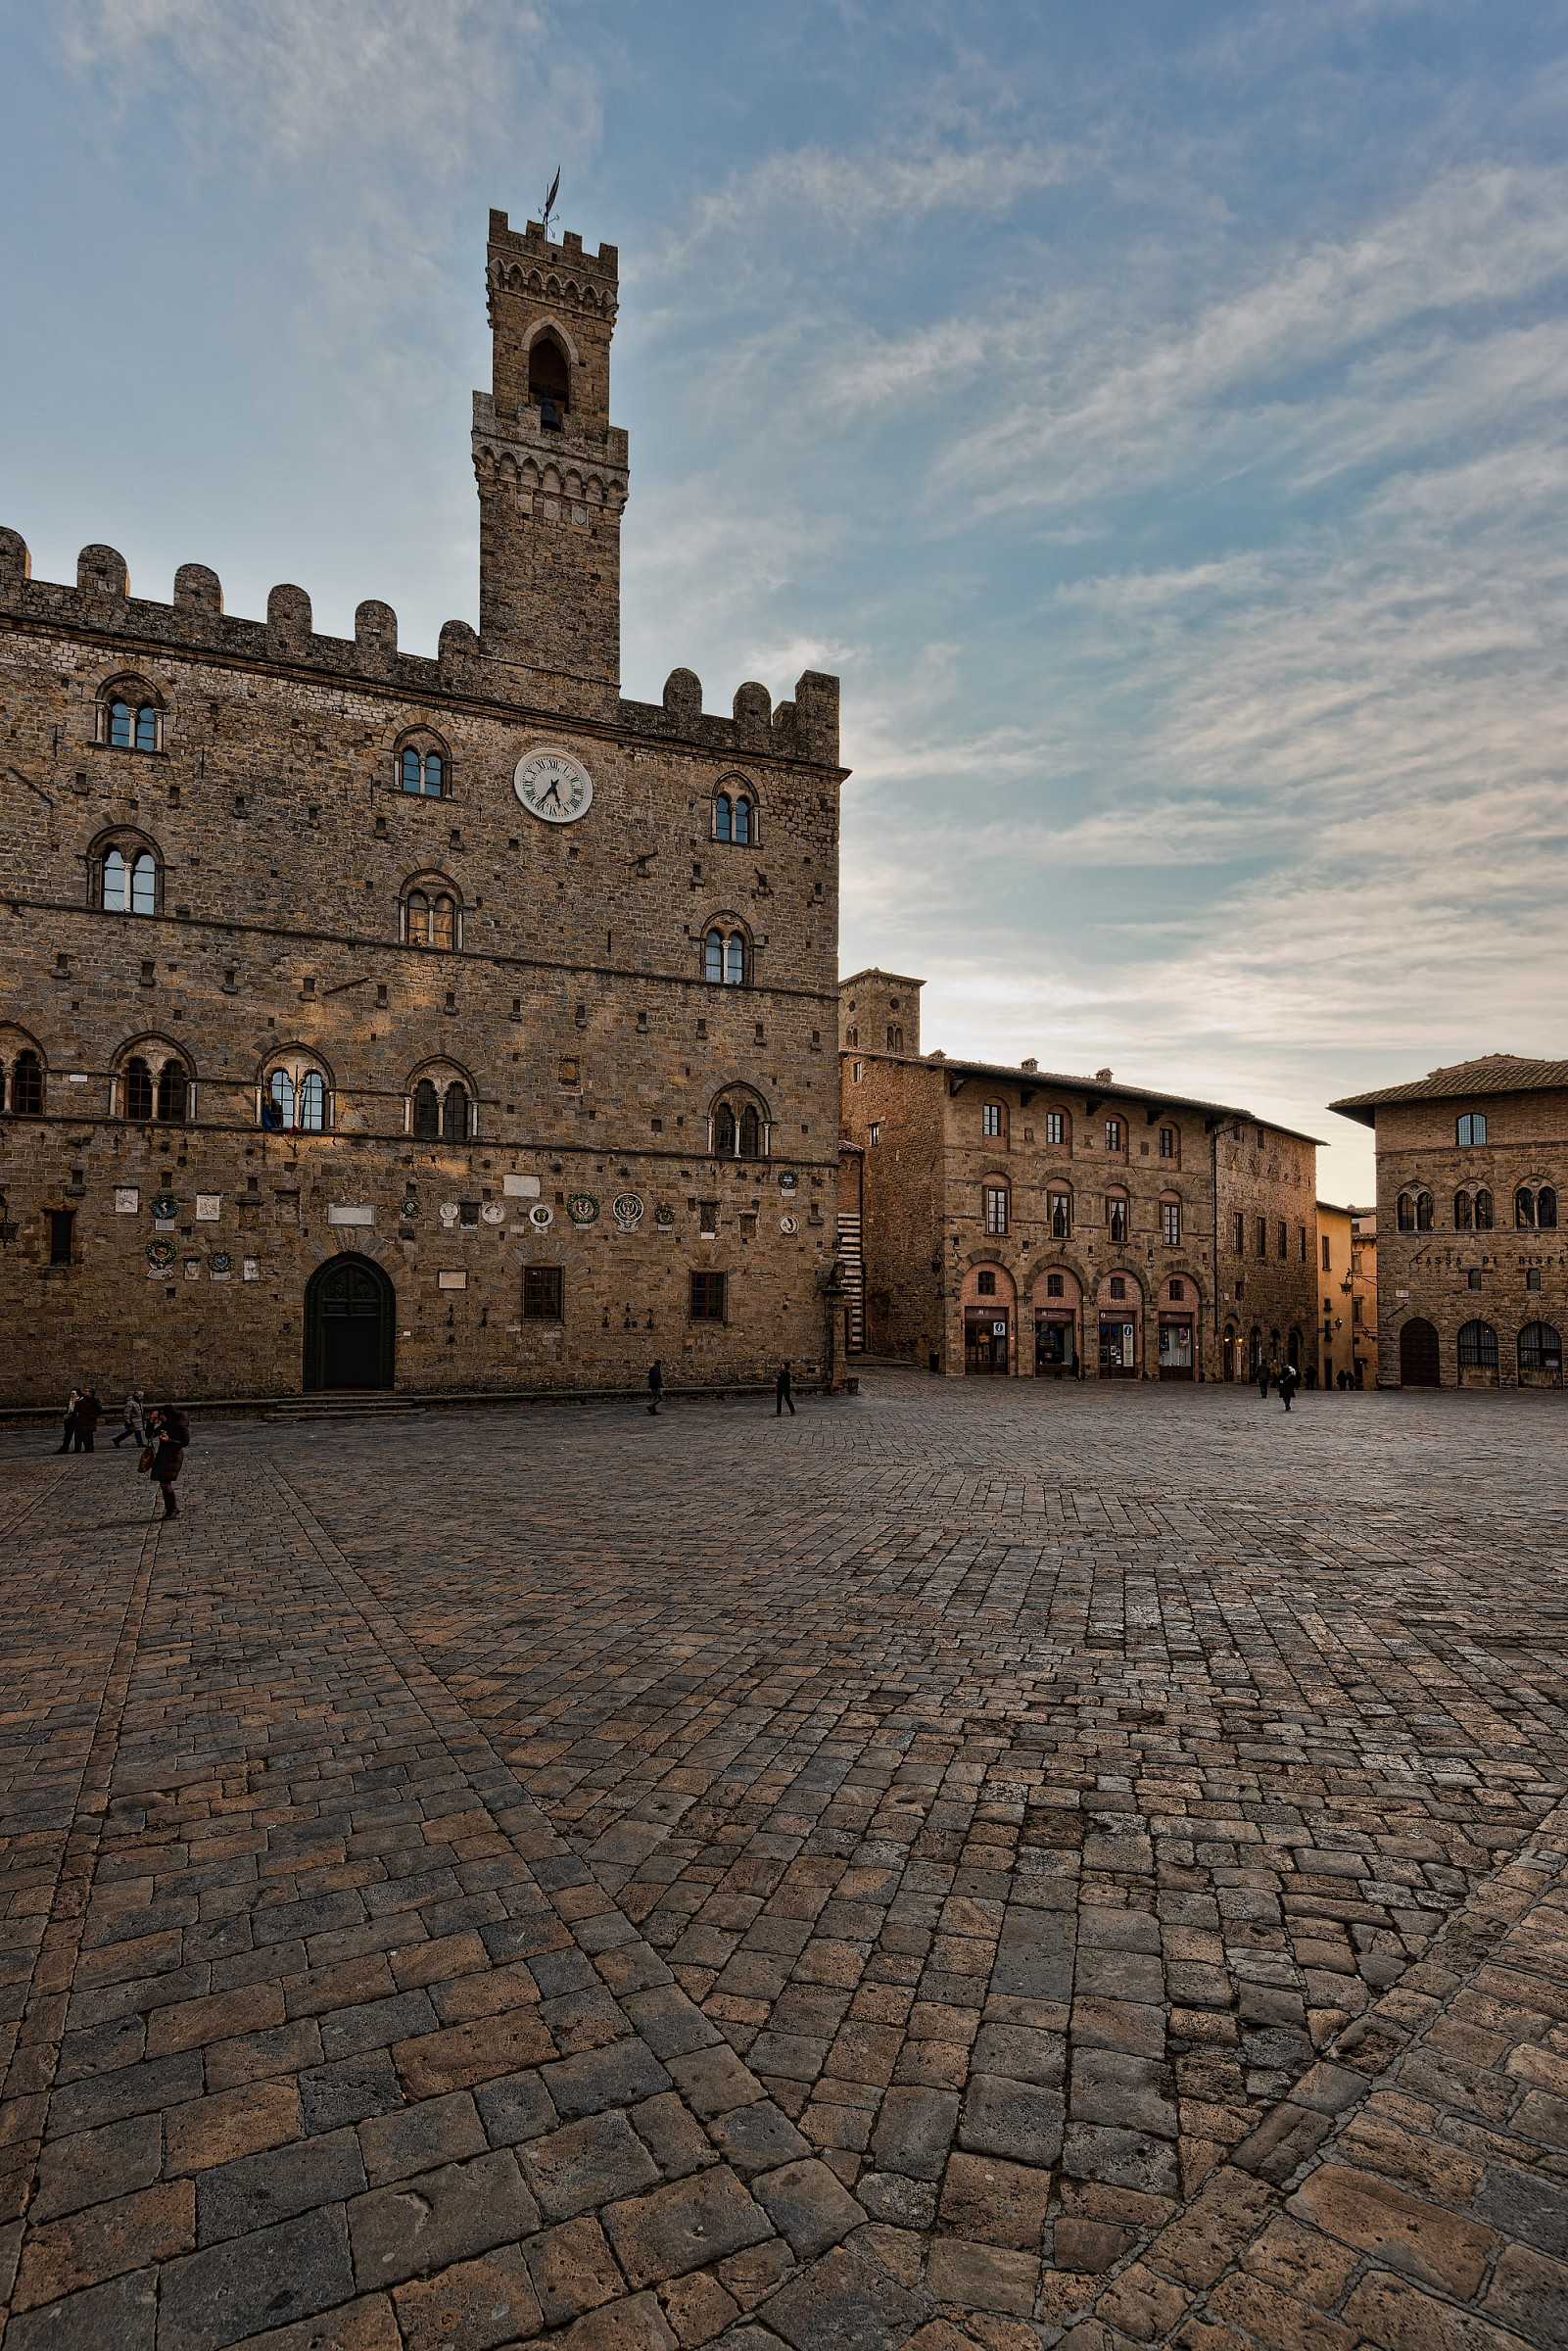 One day in tuscany......